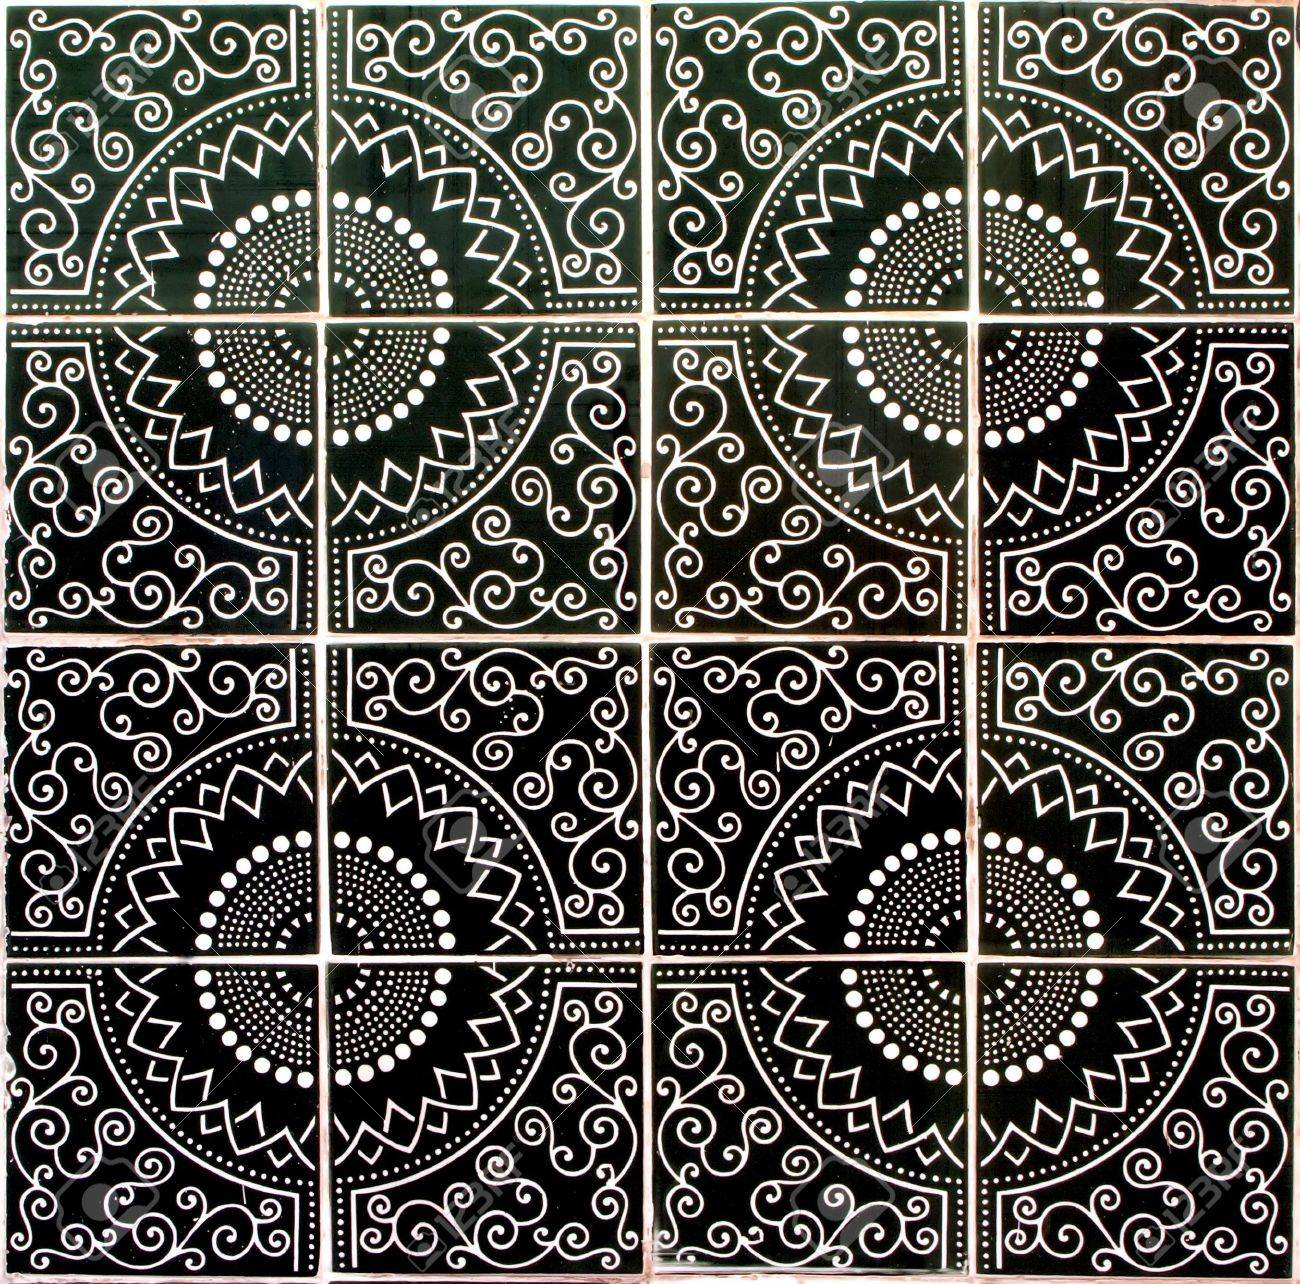 Ceramic Tiles Seamless Pattern Stock Photo, Picture And Royalty ...